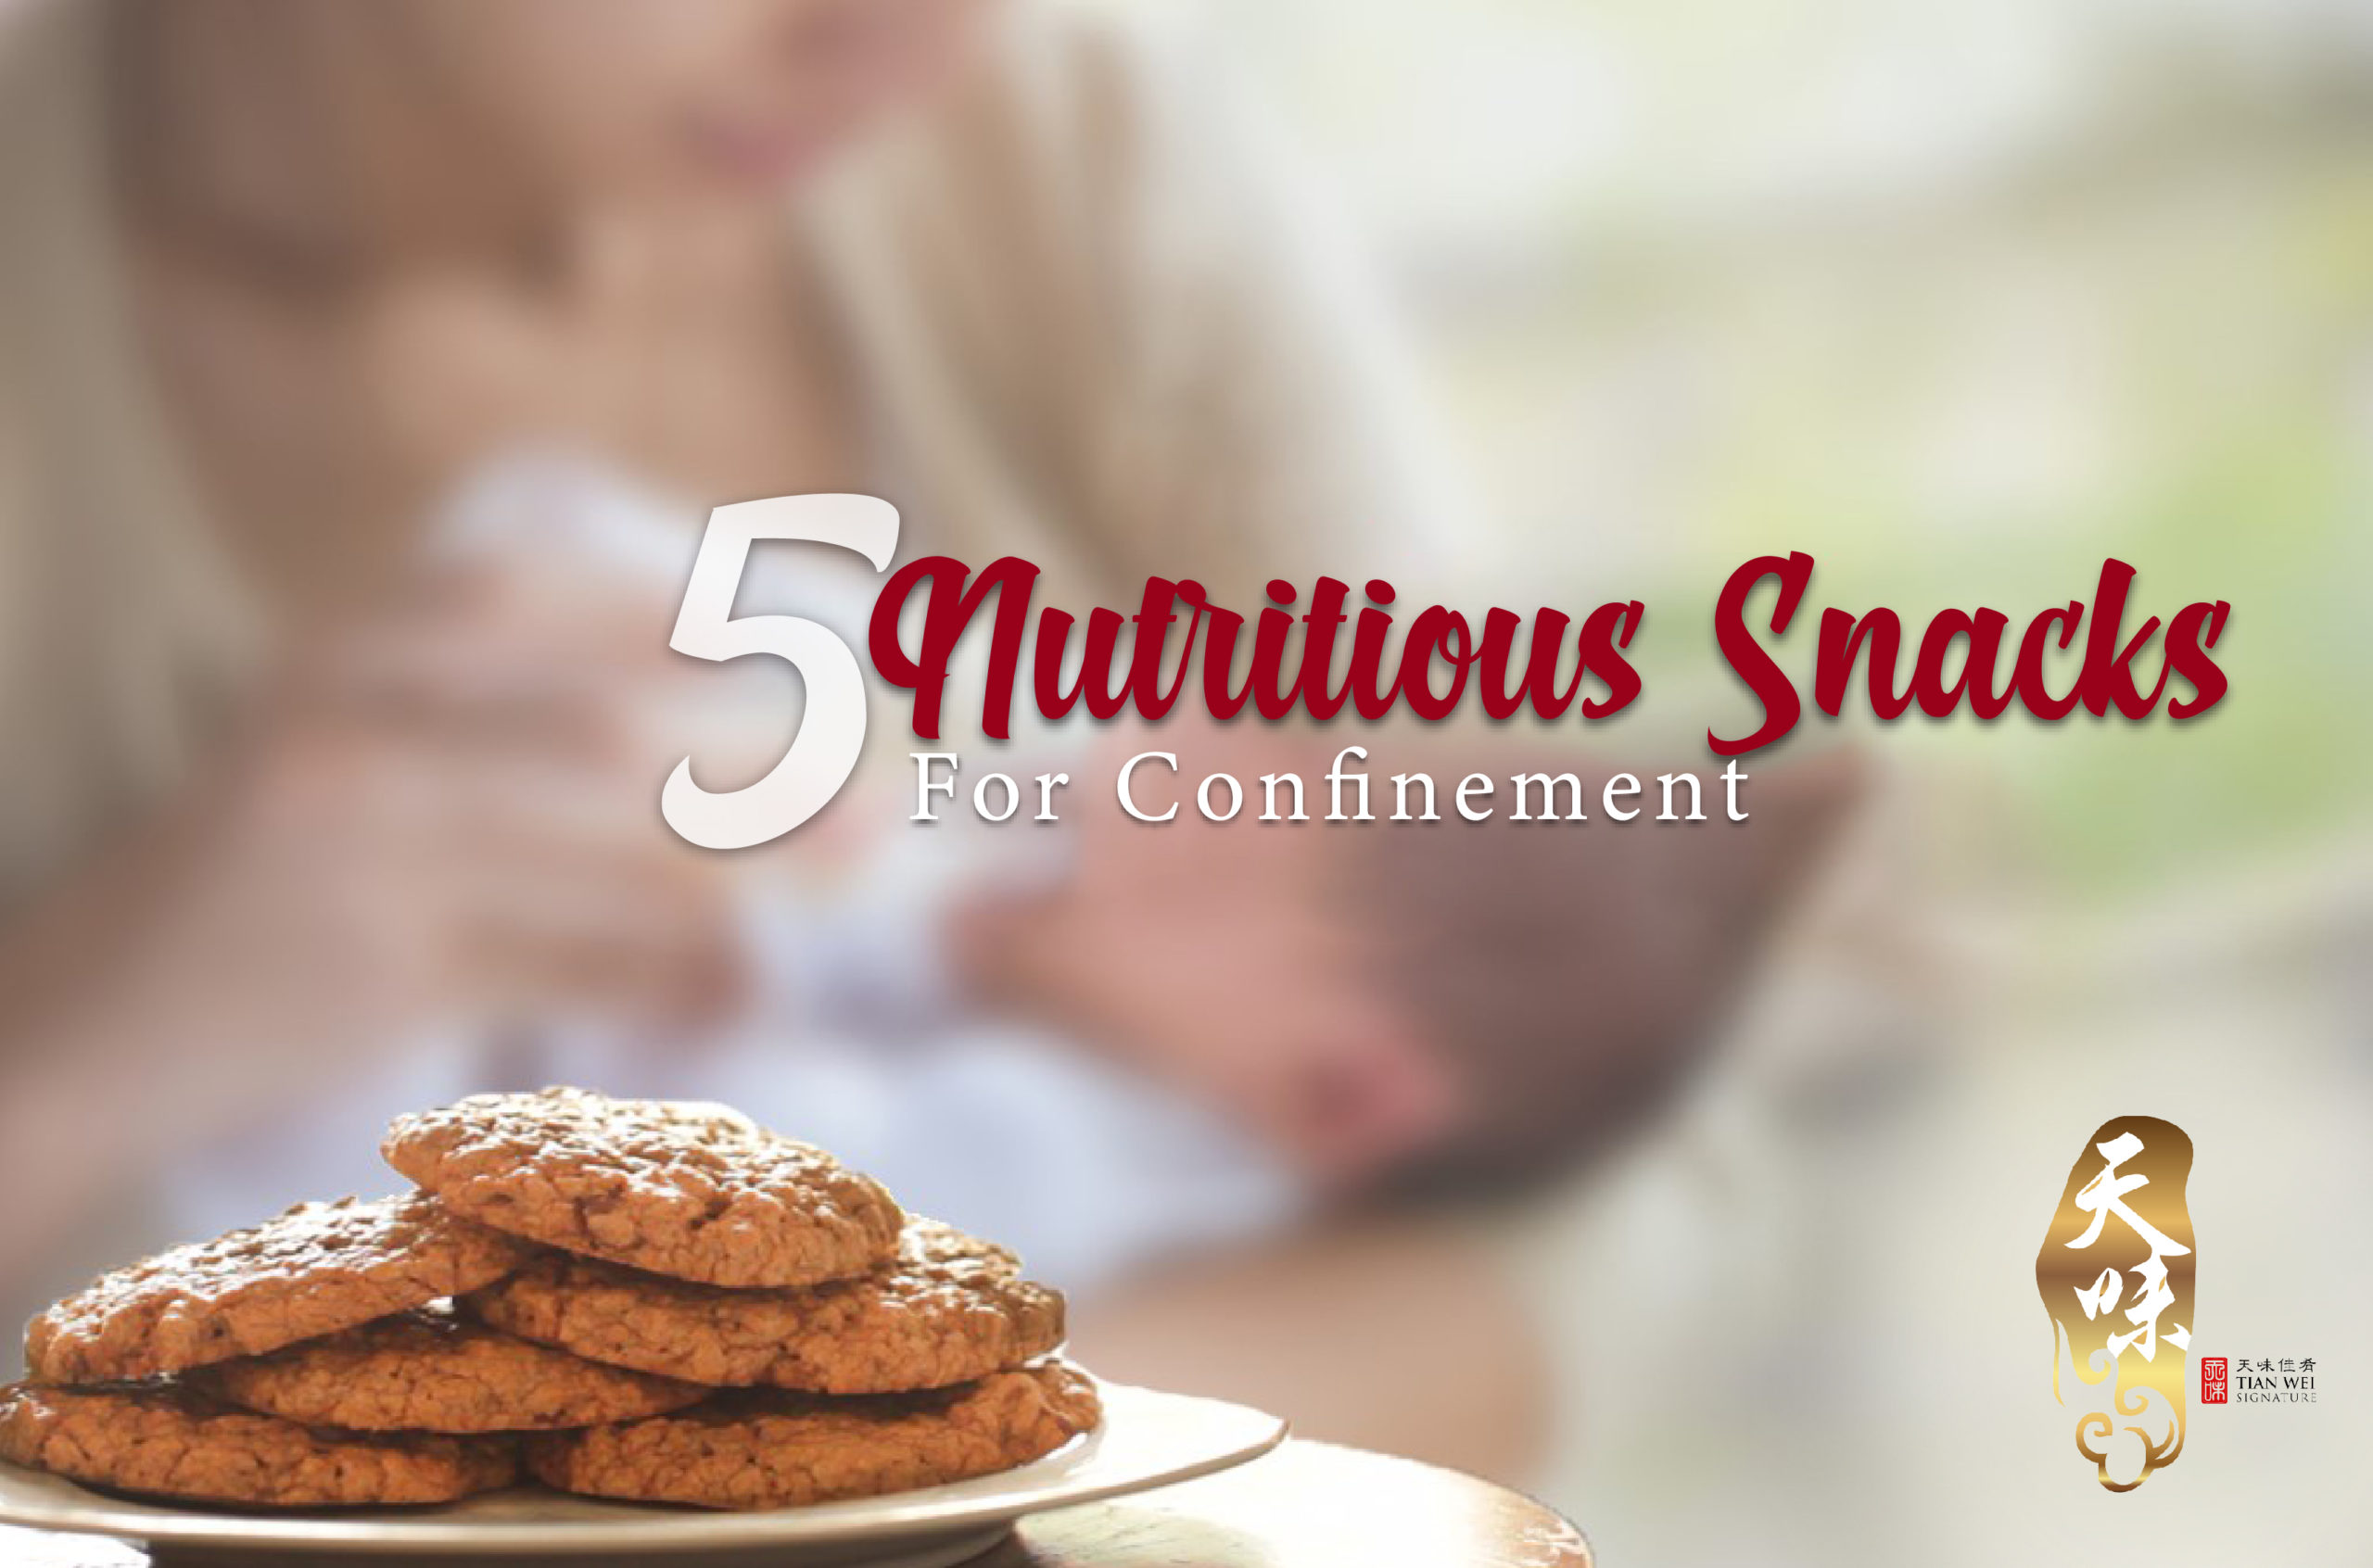 5 Nutritious Snacks For Confinement